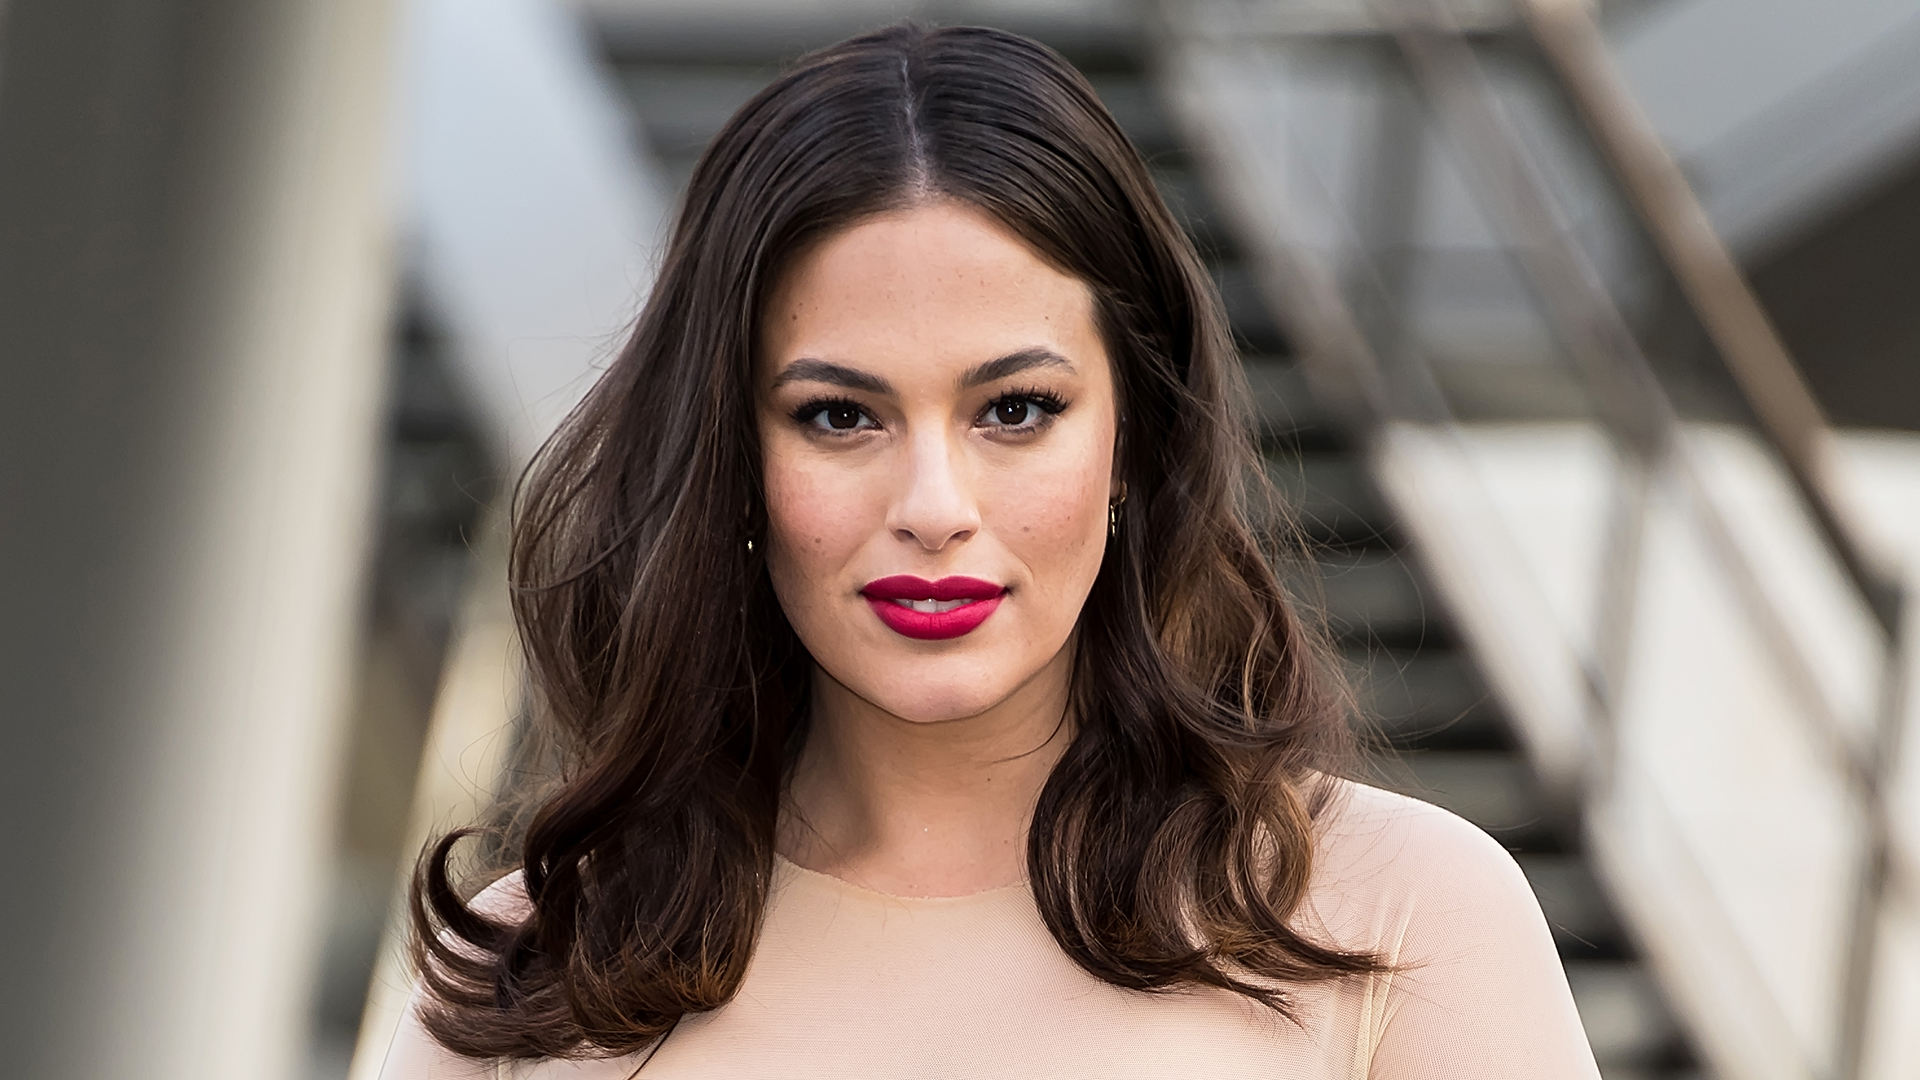 20 Stunning Hairstyles for Plus Size Women in 2020 that look ...